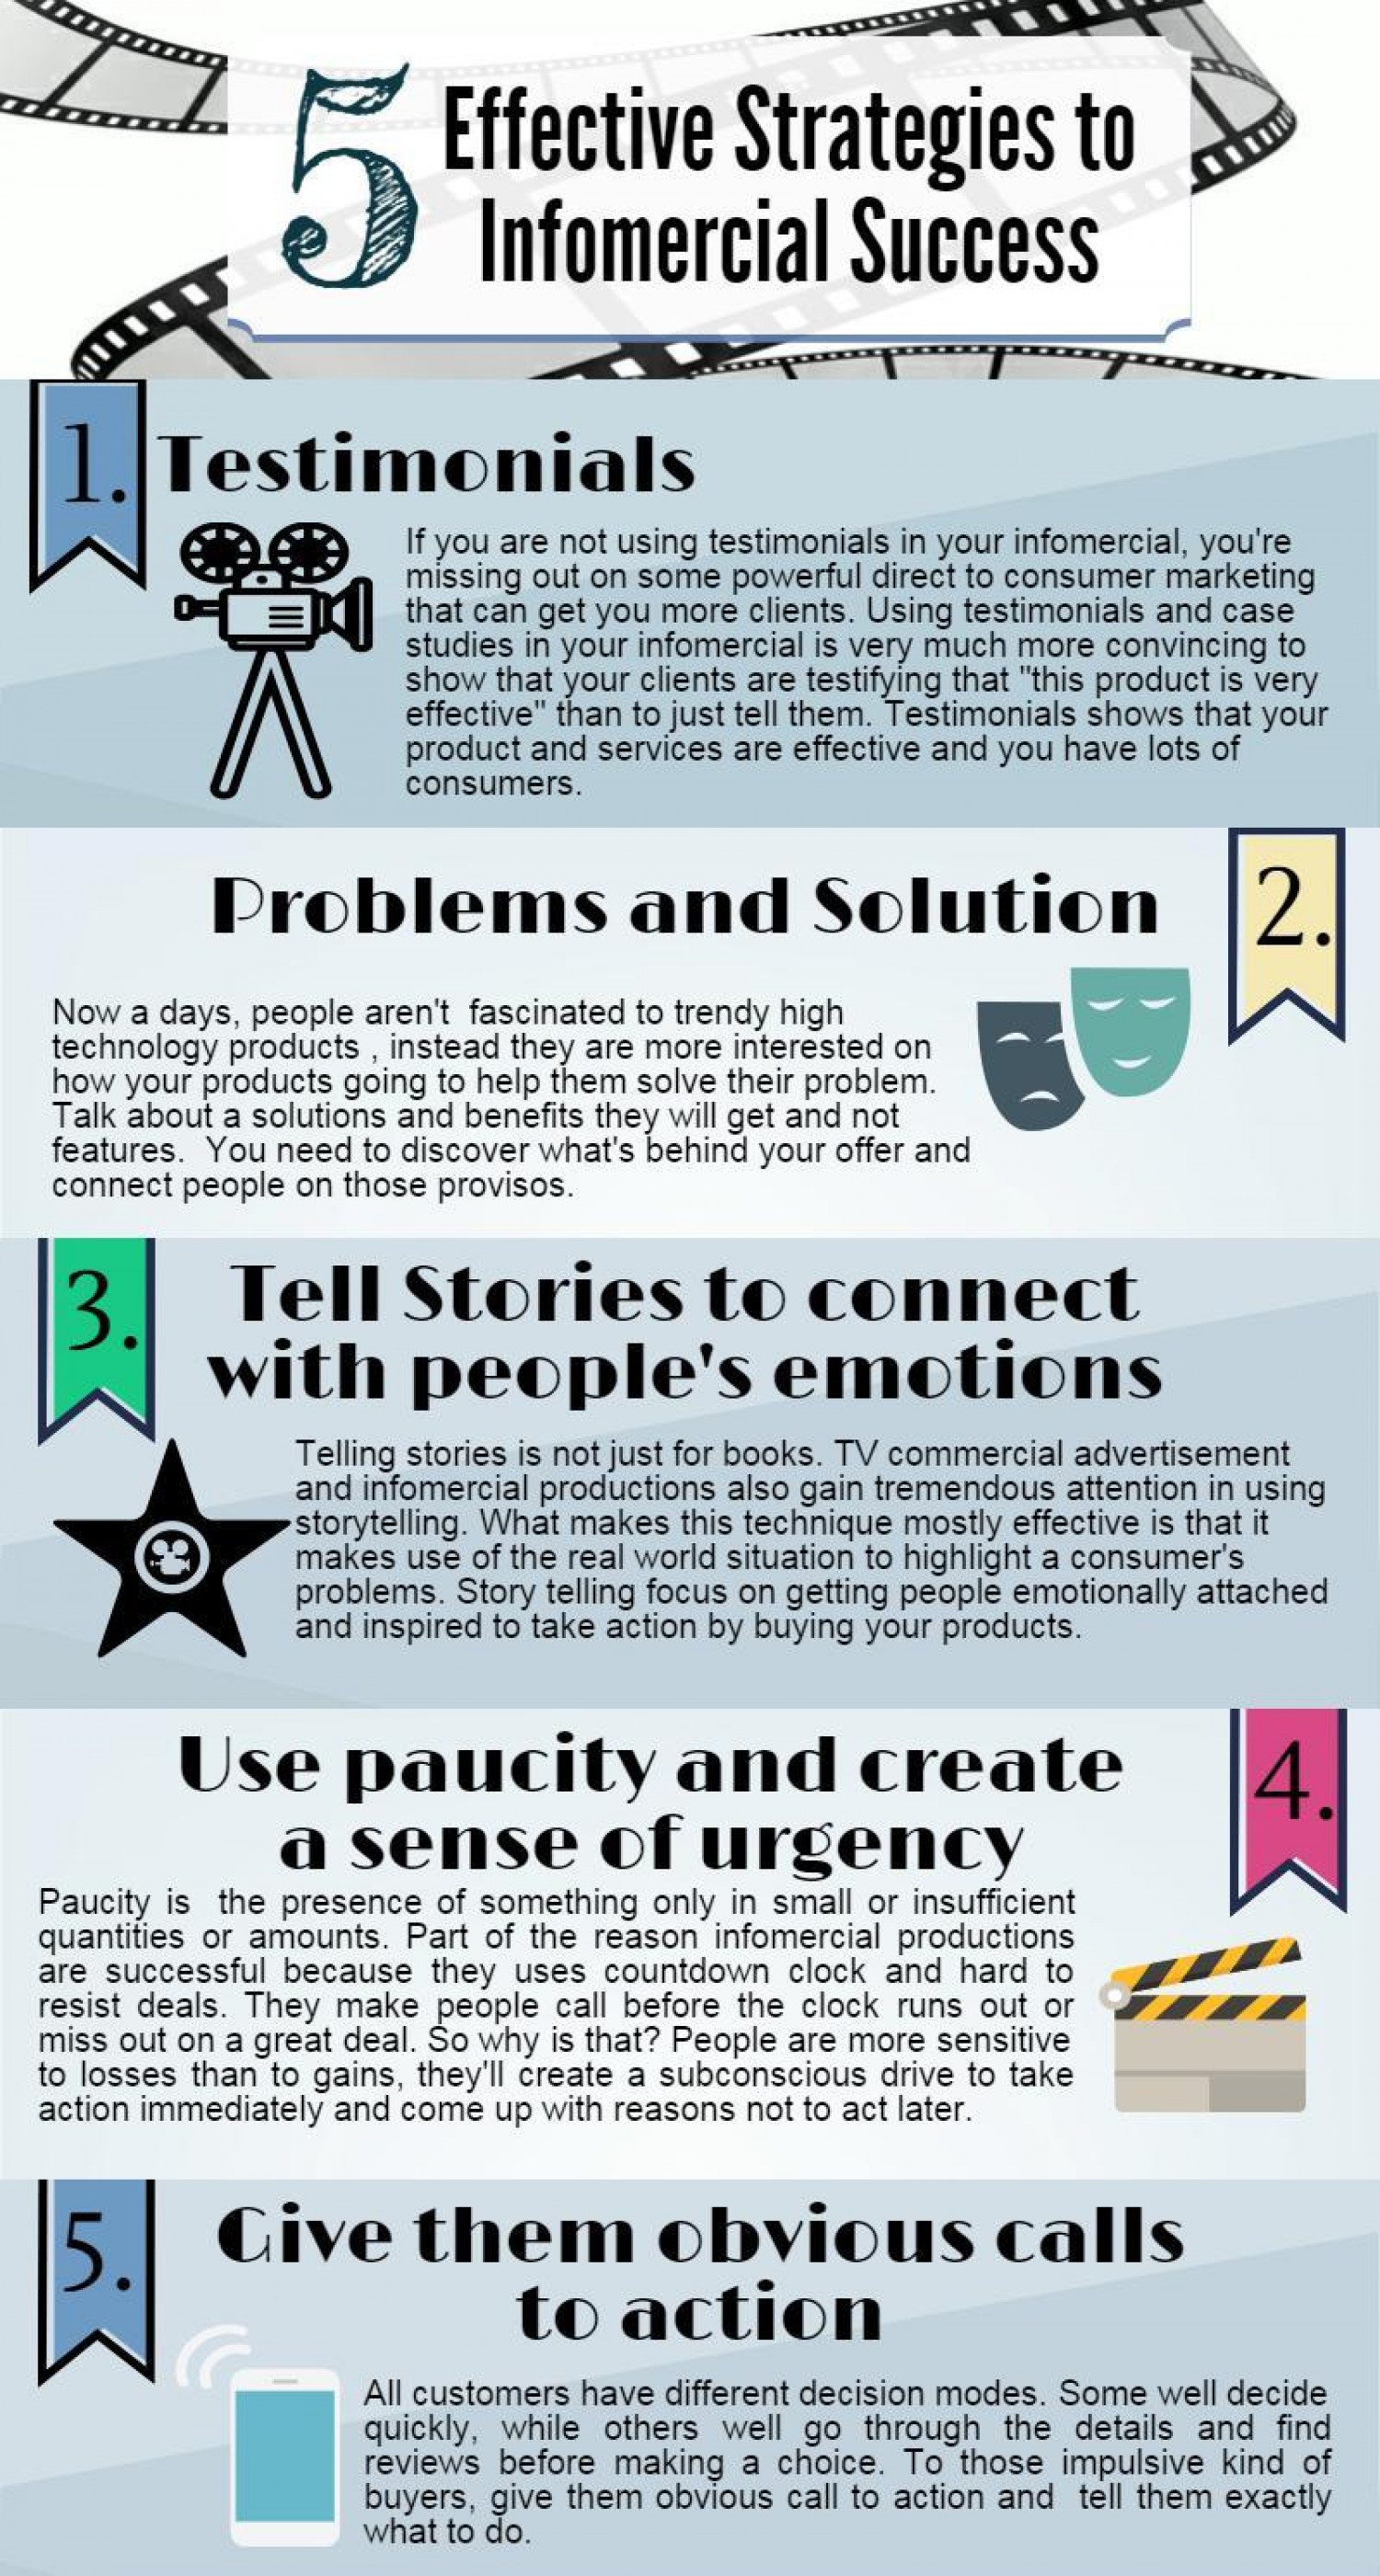 Infographic/5 Effective Strategies to Infomercial Success | Visual.ly